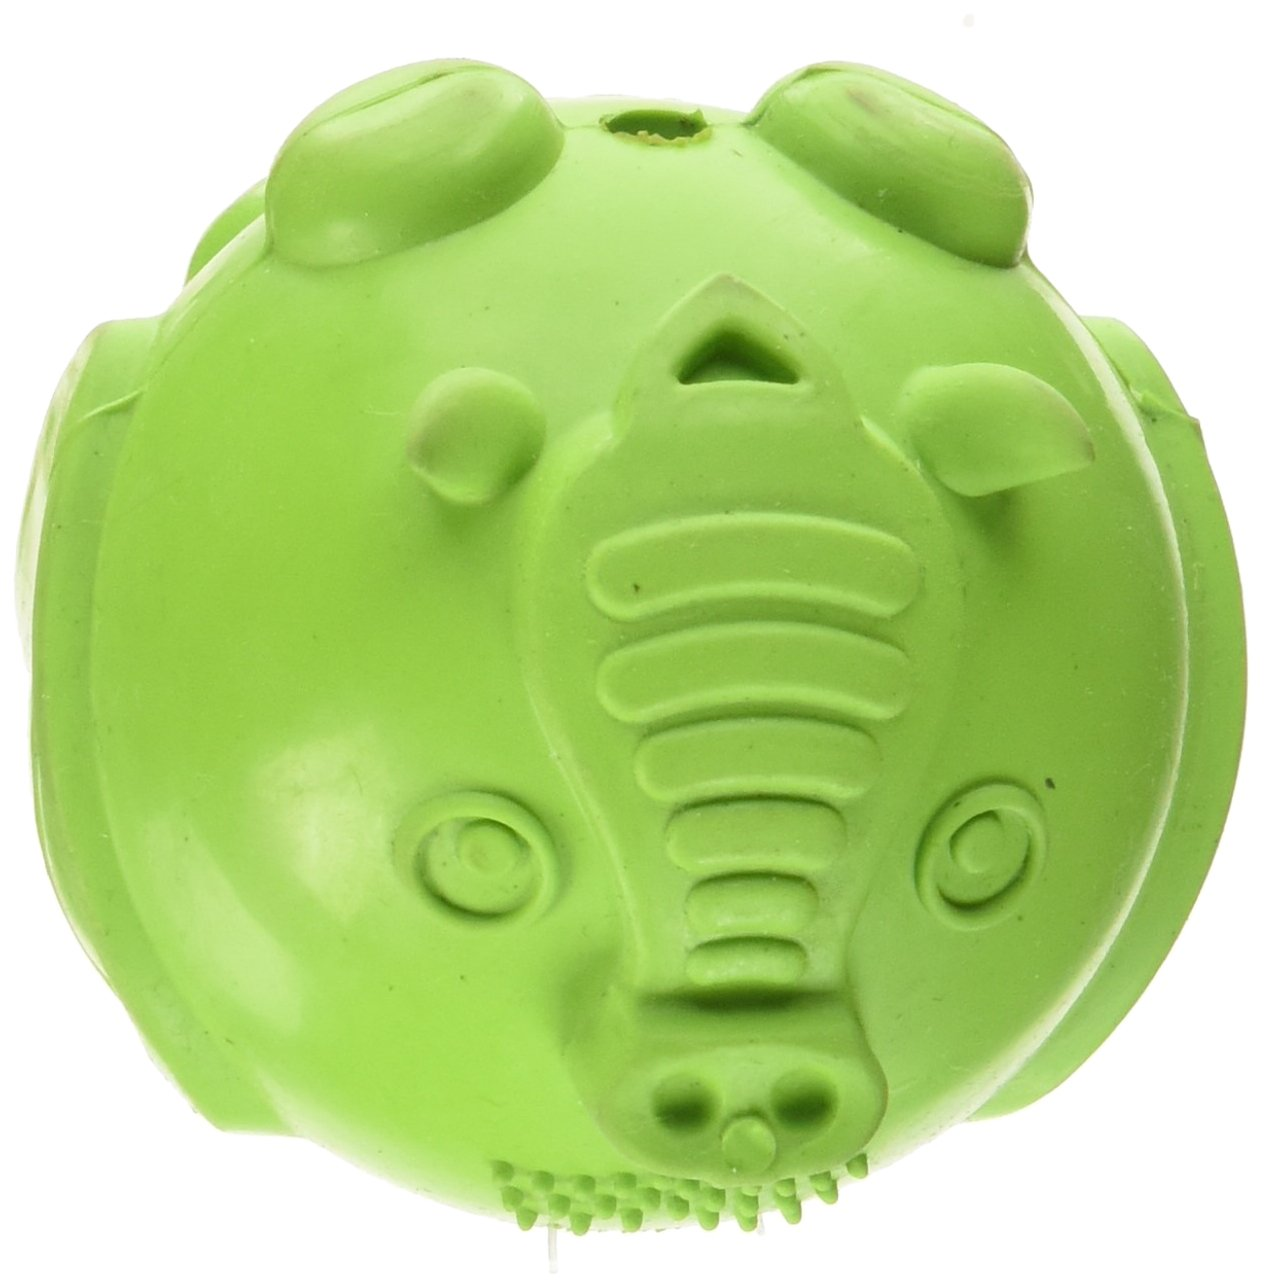 Small Dogs Busy Buddy Elephunk S Chew Toy Interactive Treat Dispensing Dog Toy